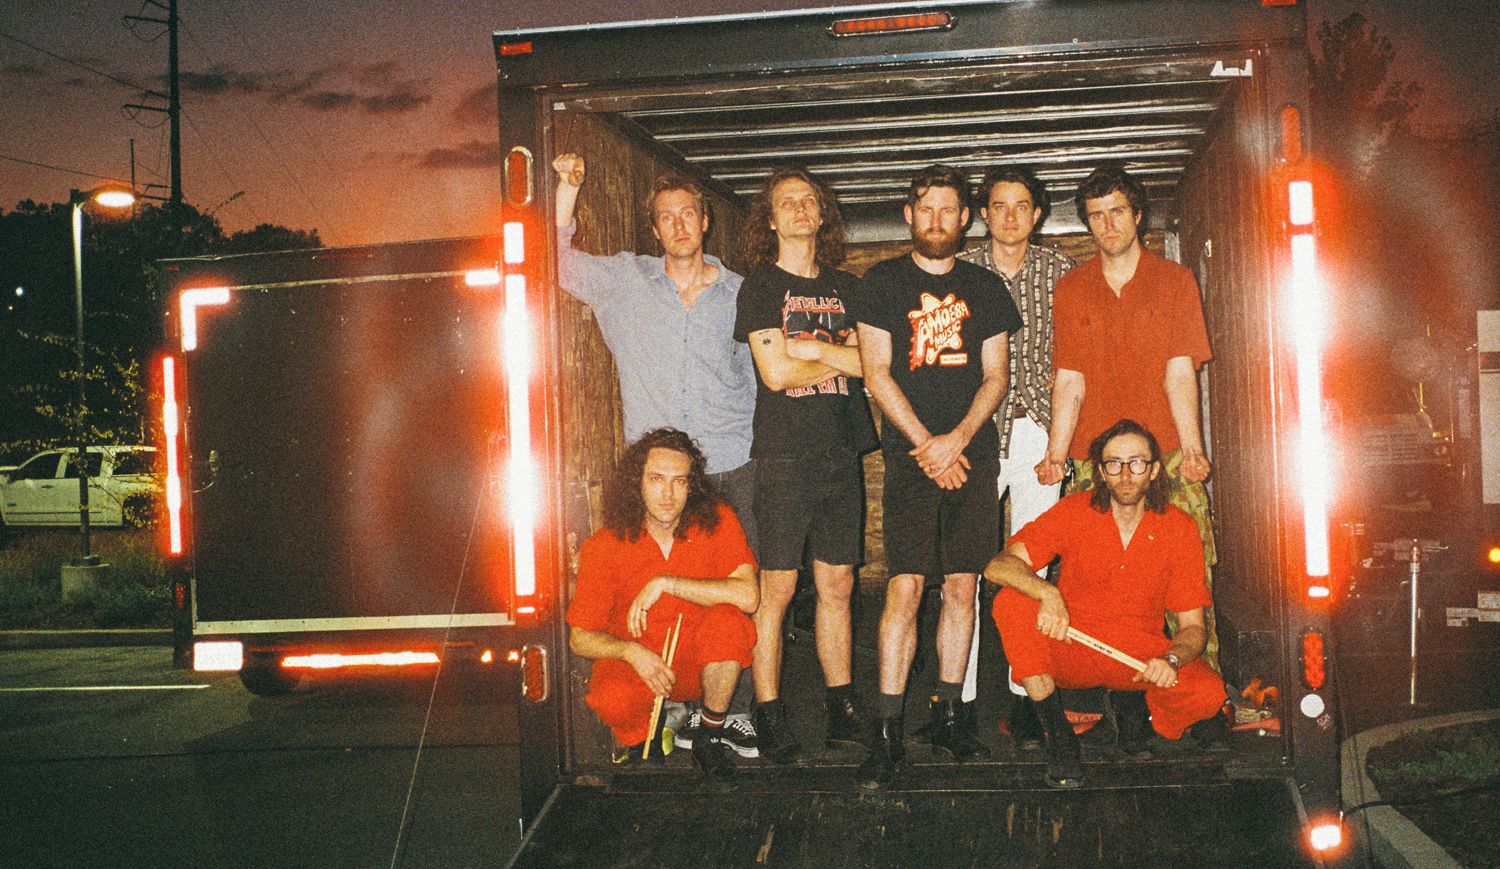 King Gizzard & The Lizard Wizard, black midi and 15 new names!